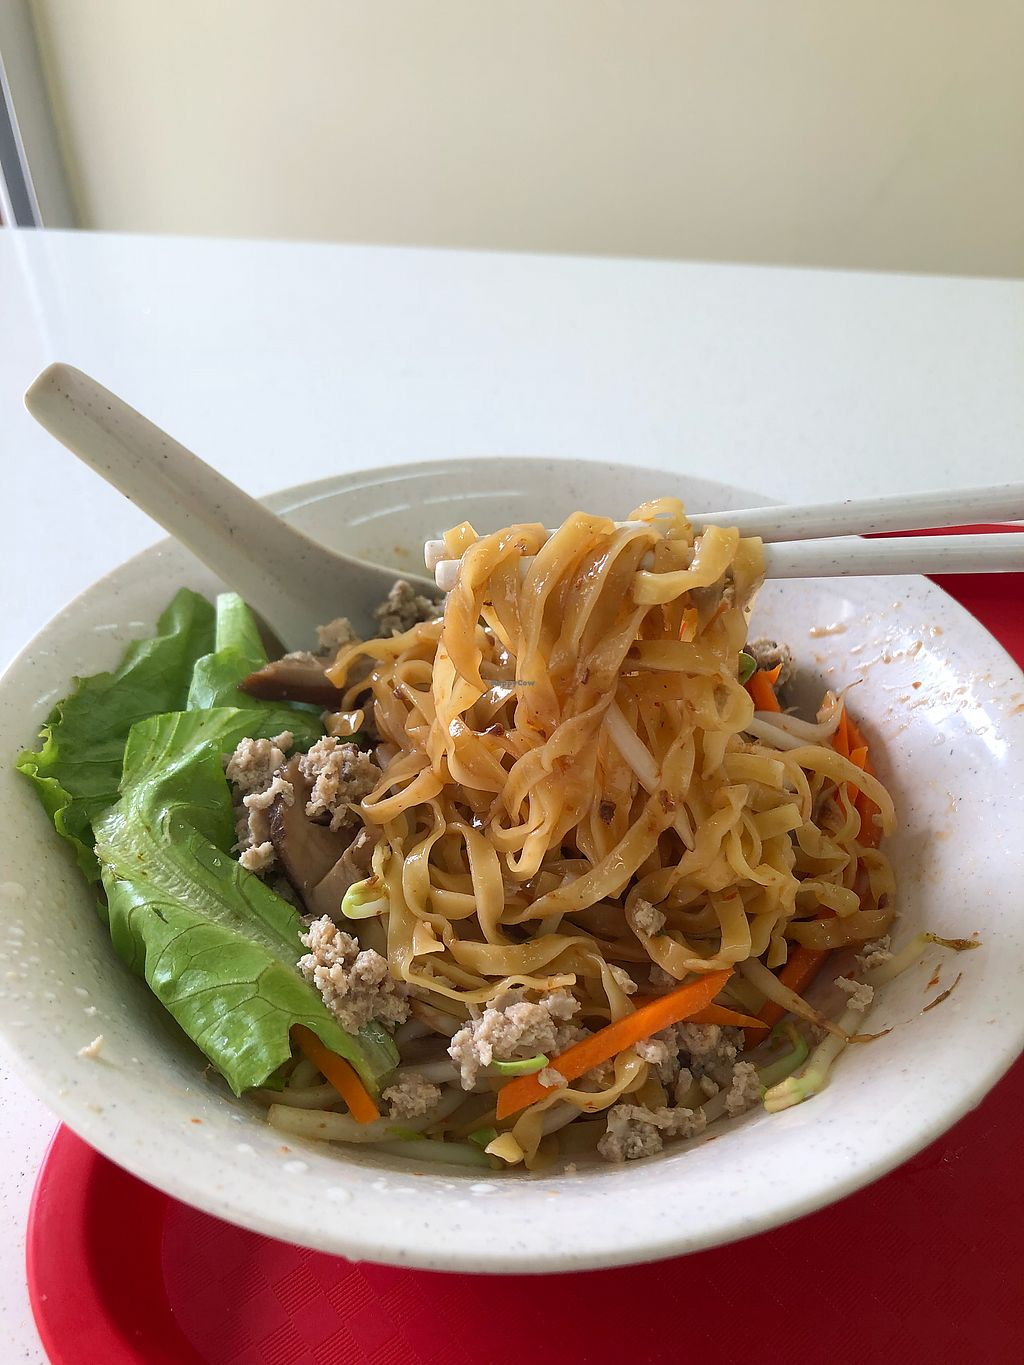 """Photo of Pine Green Vegan Cafe  by <a href=""""/members/profile/CherylQuincy"""">CherylQuincy</a> <br/>Bak Chor Mee <br/> January 18, 2018  - <a href='/contact/abuse/image/108370/347911'>Report</a>"""